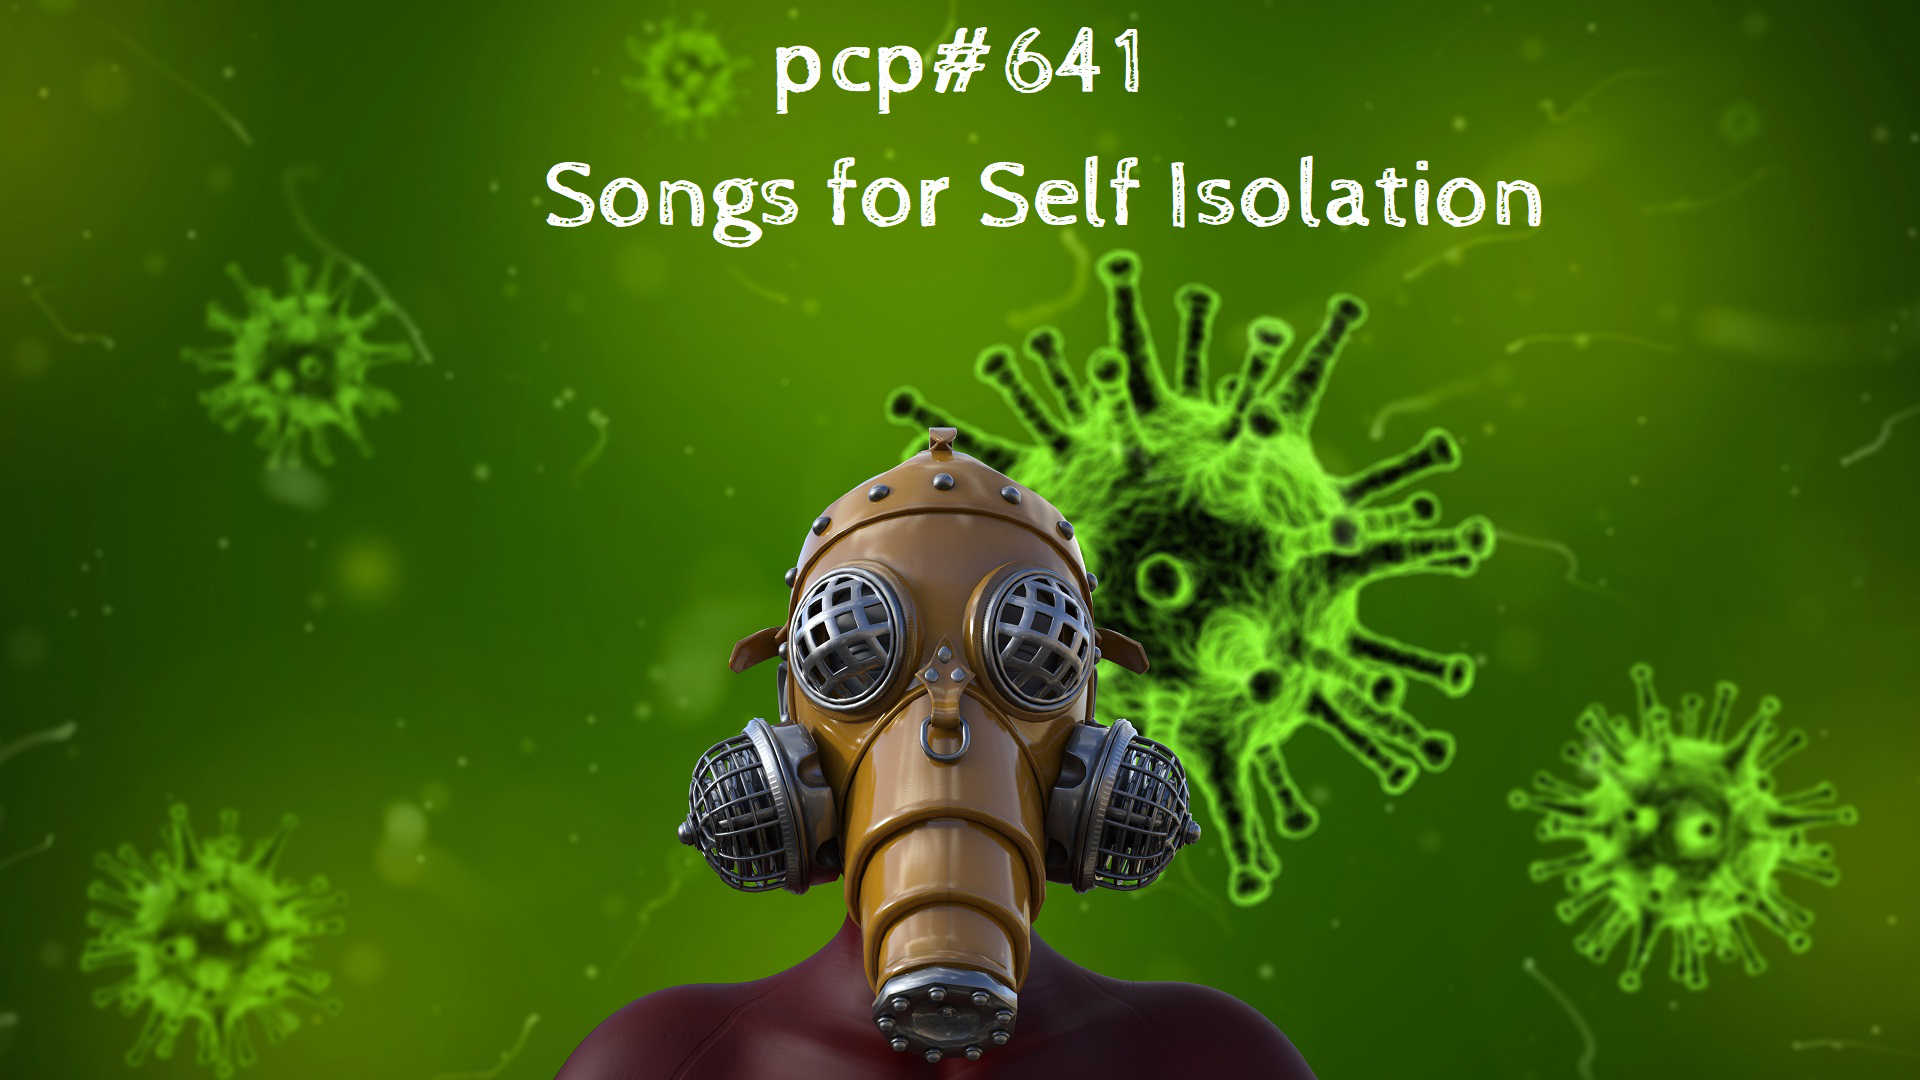 PCP#641... Songs for Self Isolation....